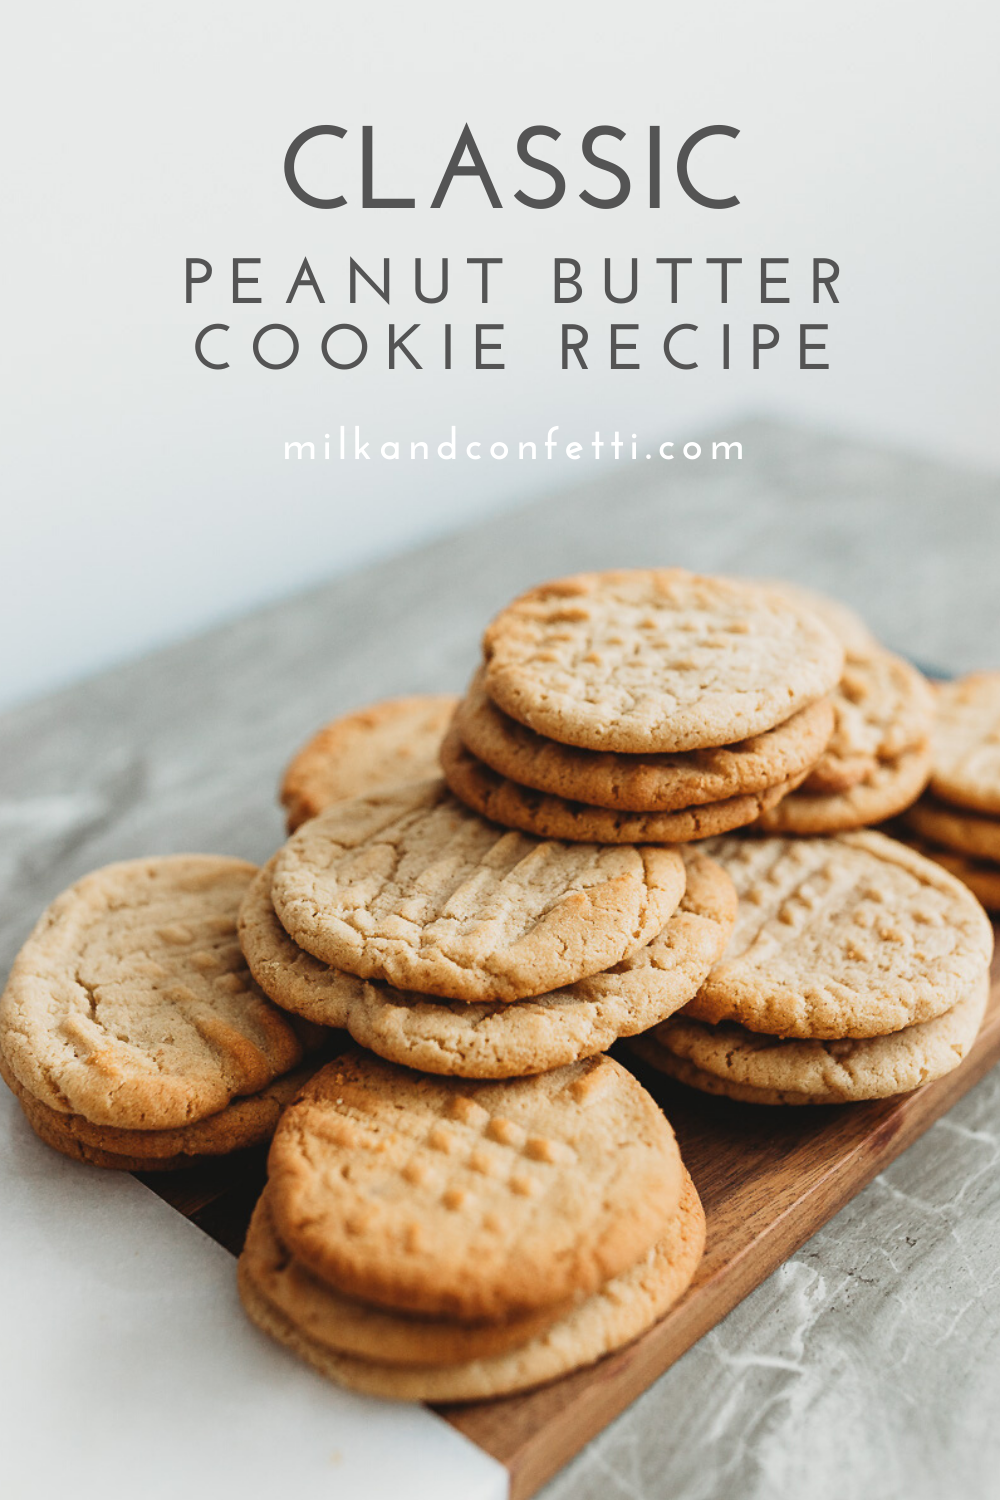 A platter of perfectly baked peanut butter cookies.